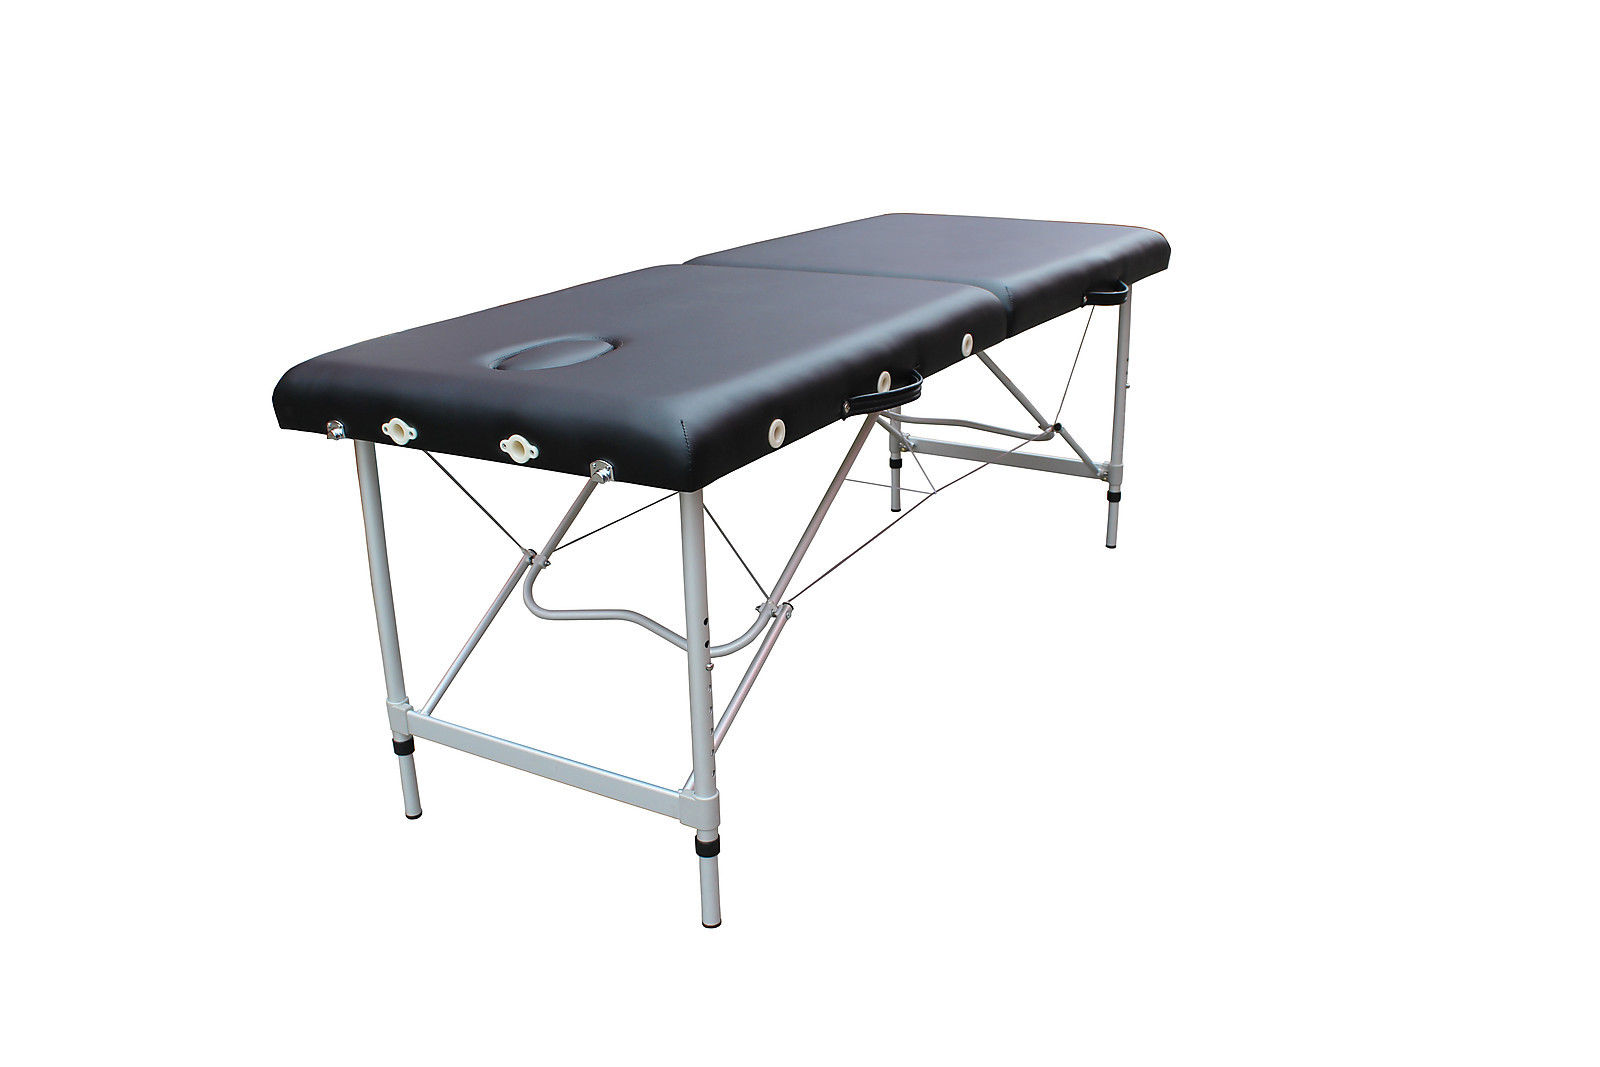 Mcombo aluminum portable massage table bed spa w carrying case 6150 al22bk ebay - How much is a massage table ...